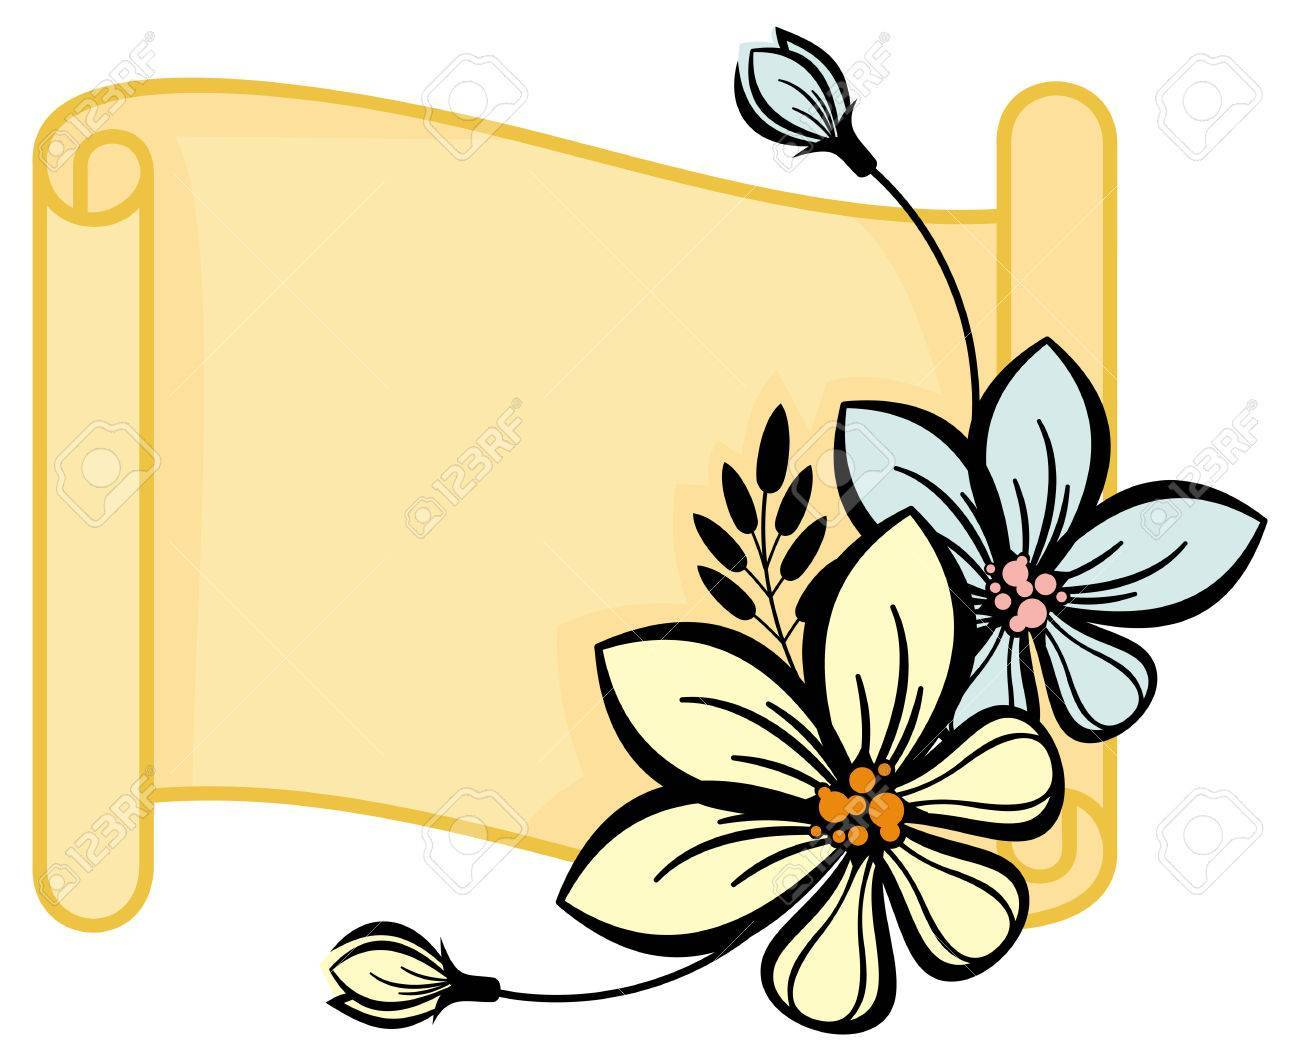 Floral scroll clipart graphic library Flower scroll clipart 5 » Clipart Portal graphic library